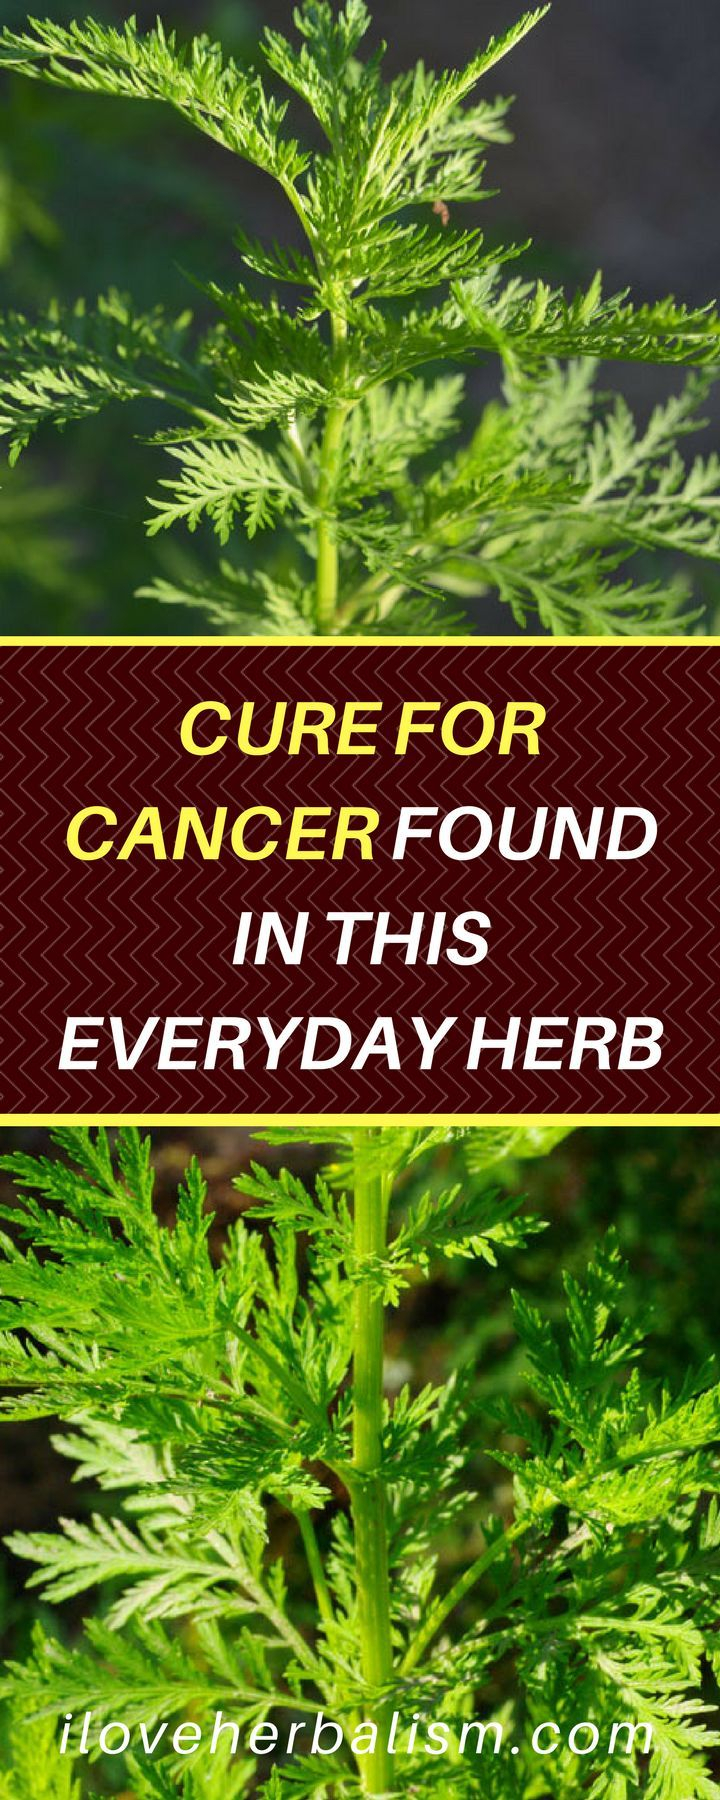 [VIDEO] AMAZING! CURE FOR CANCER FOUND IN THIS EVERYDAY HERB…. MUST WATCH!!!